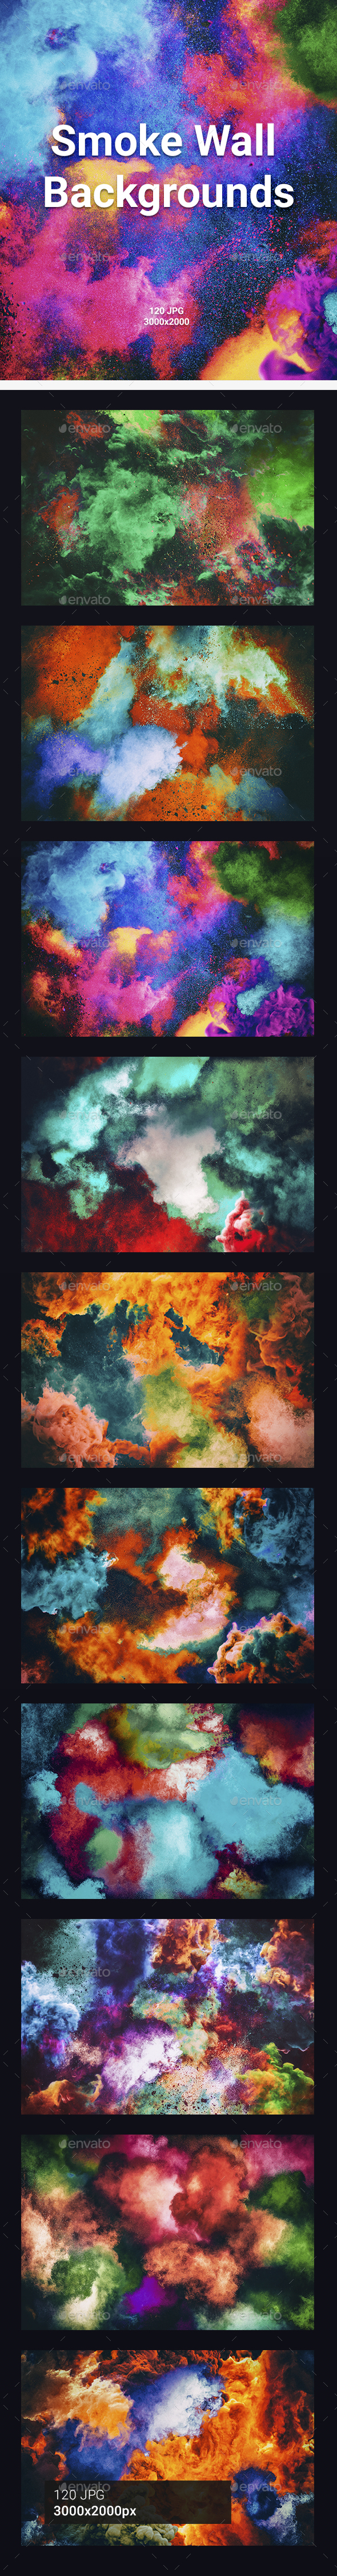 120 Smoke Wall Backgrounds - Abstract Backgrounds